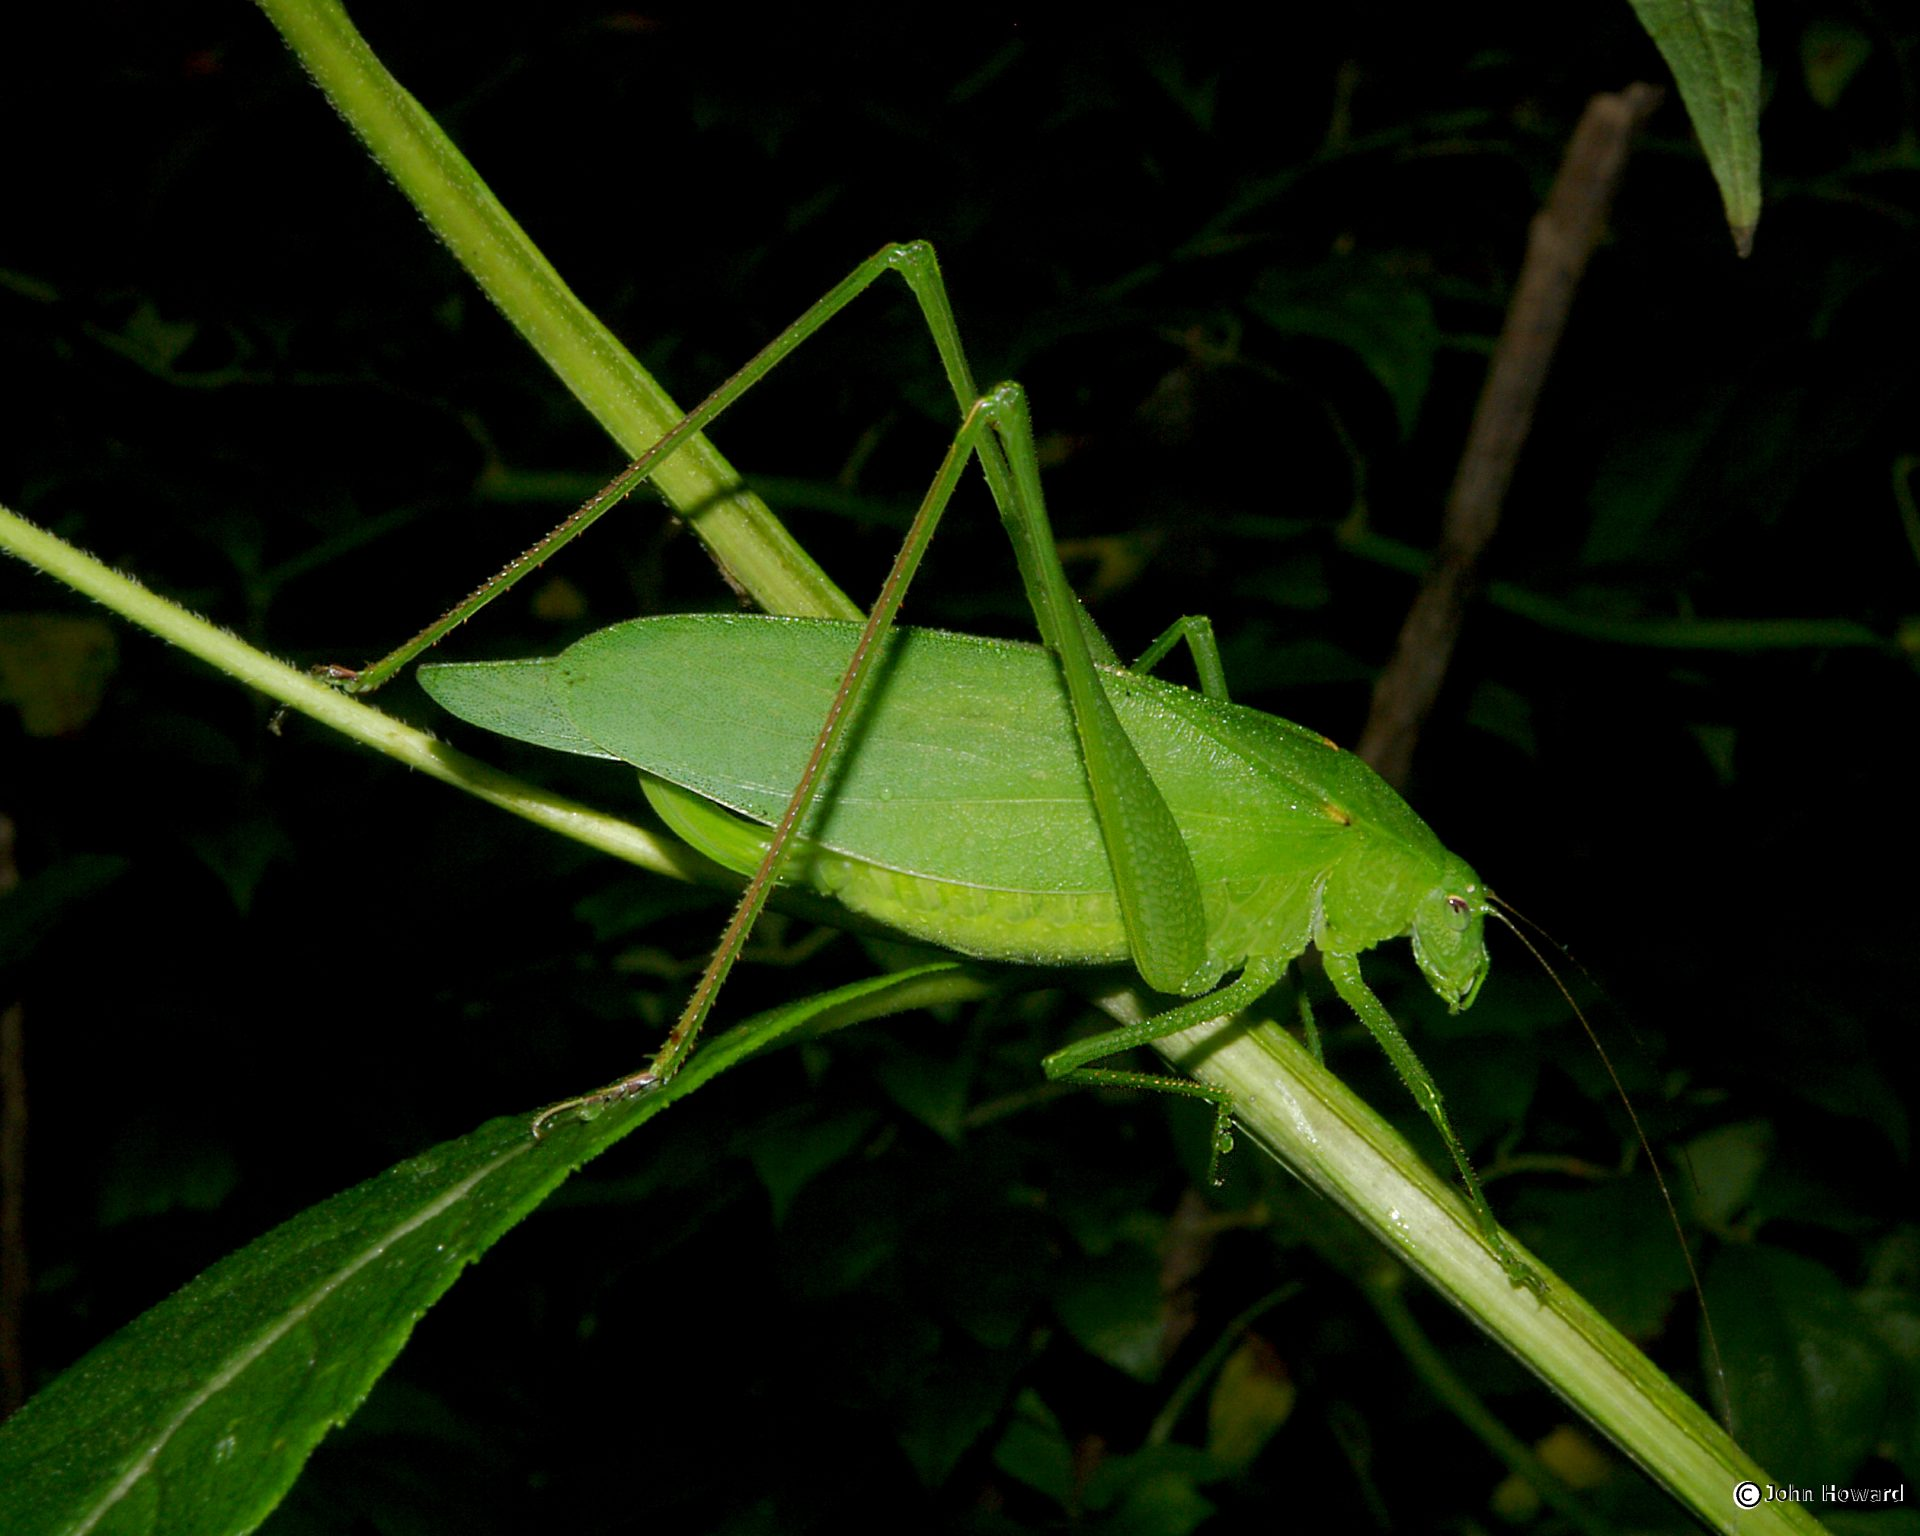 Katydid photo by John Howard